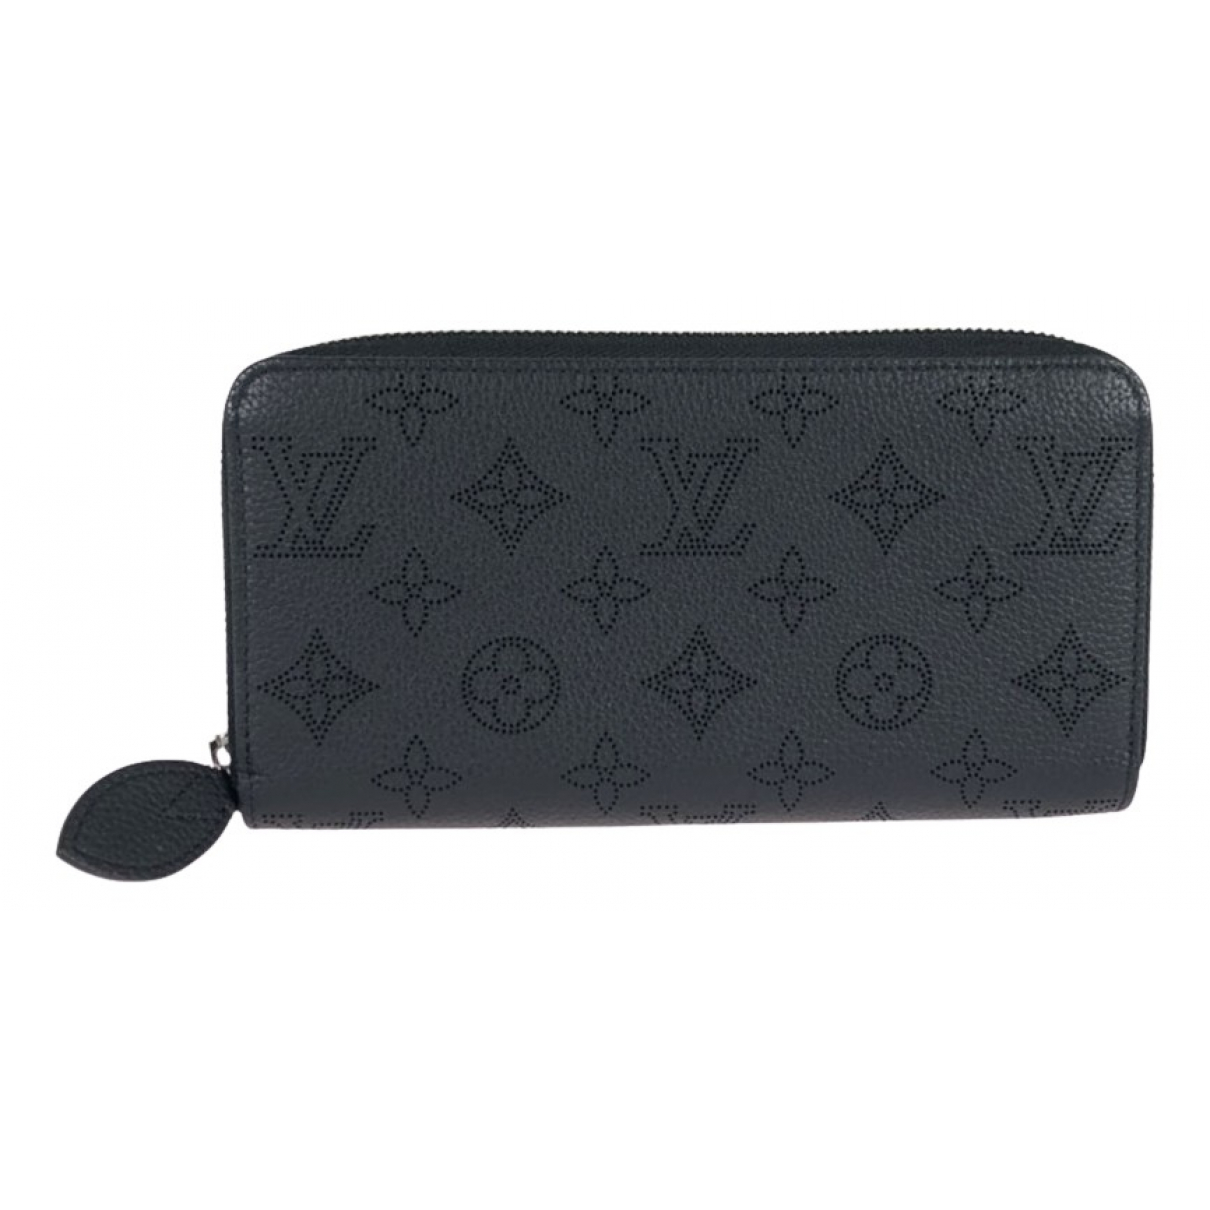 Louis Vuitton Mahina Black Leather wallet for Women N